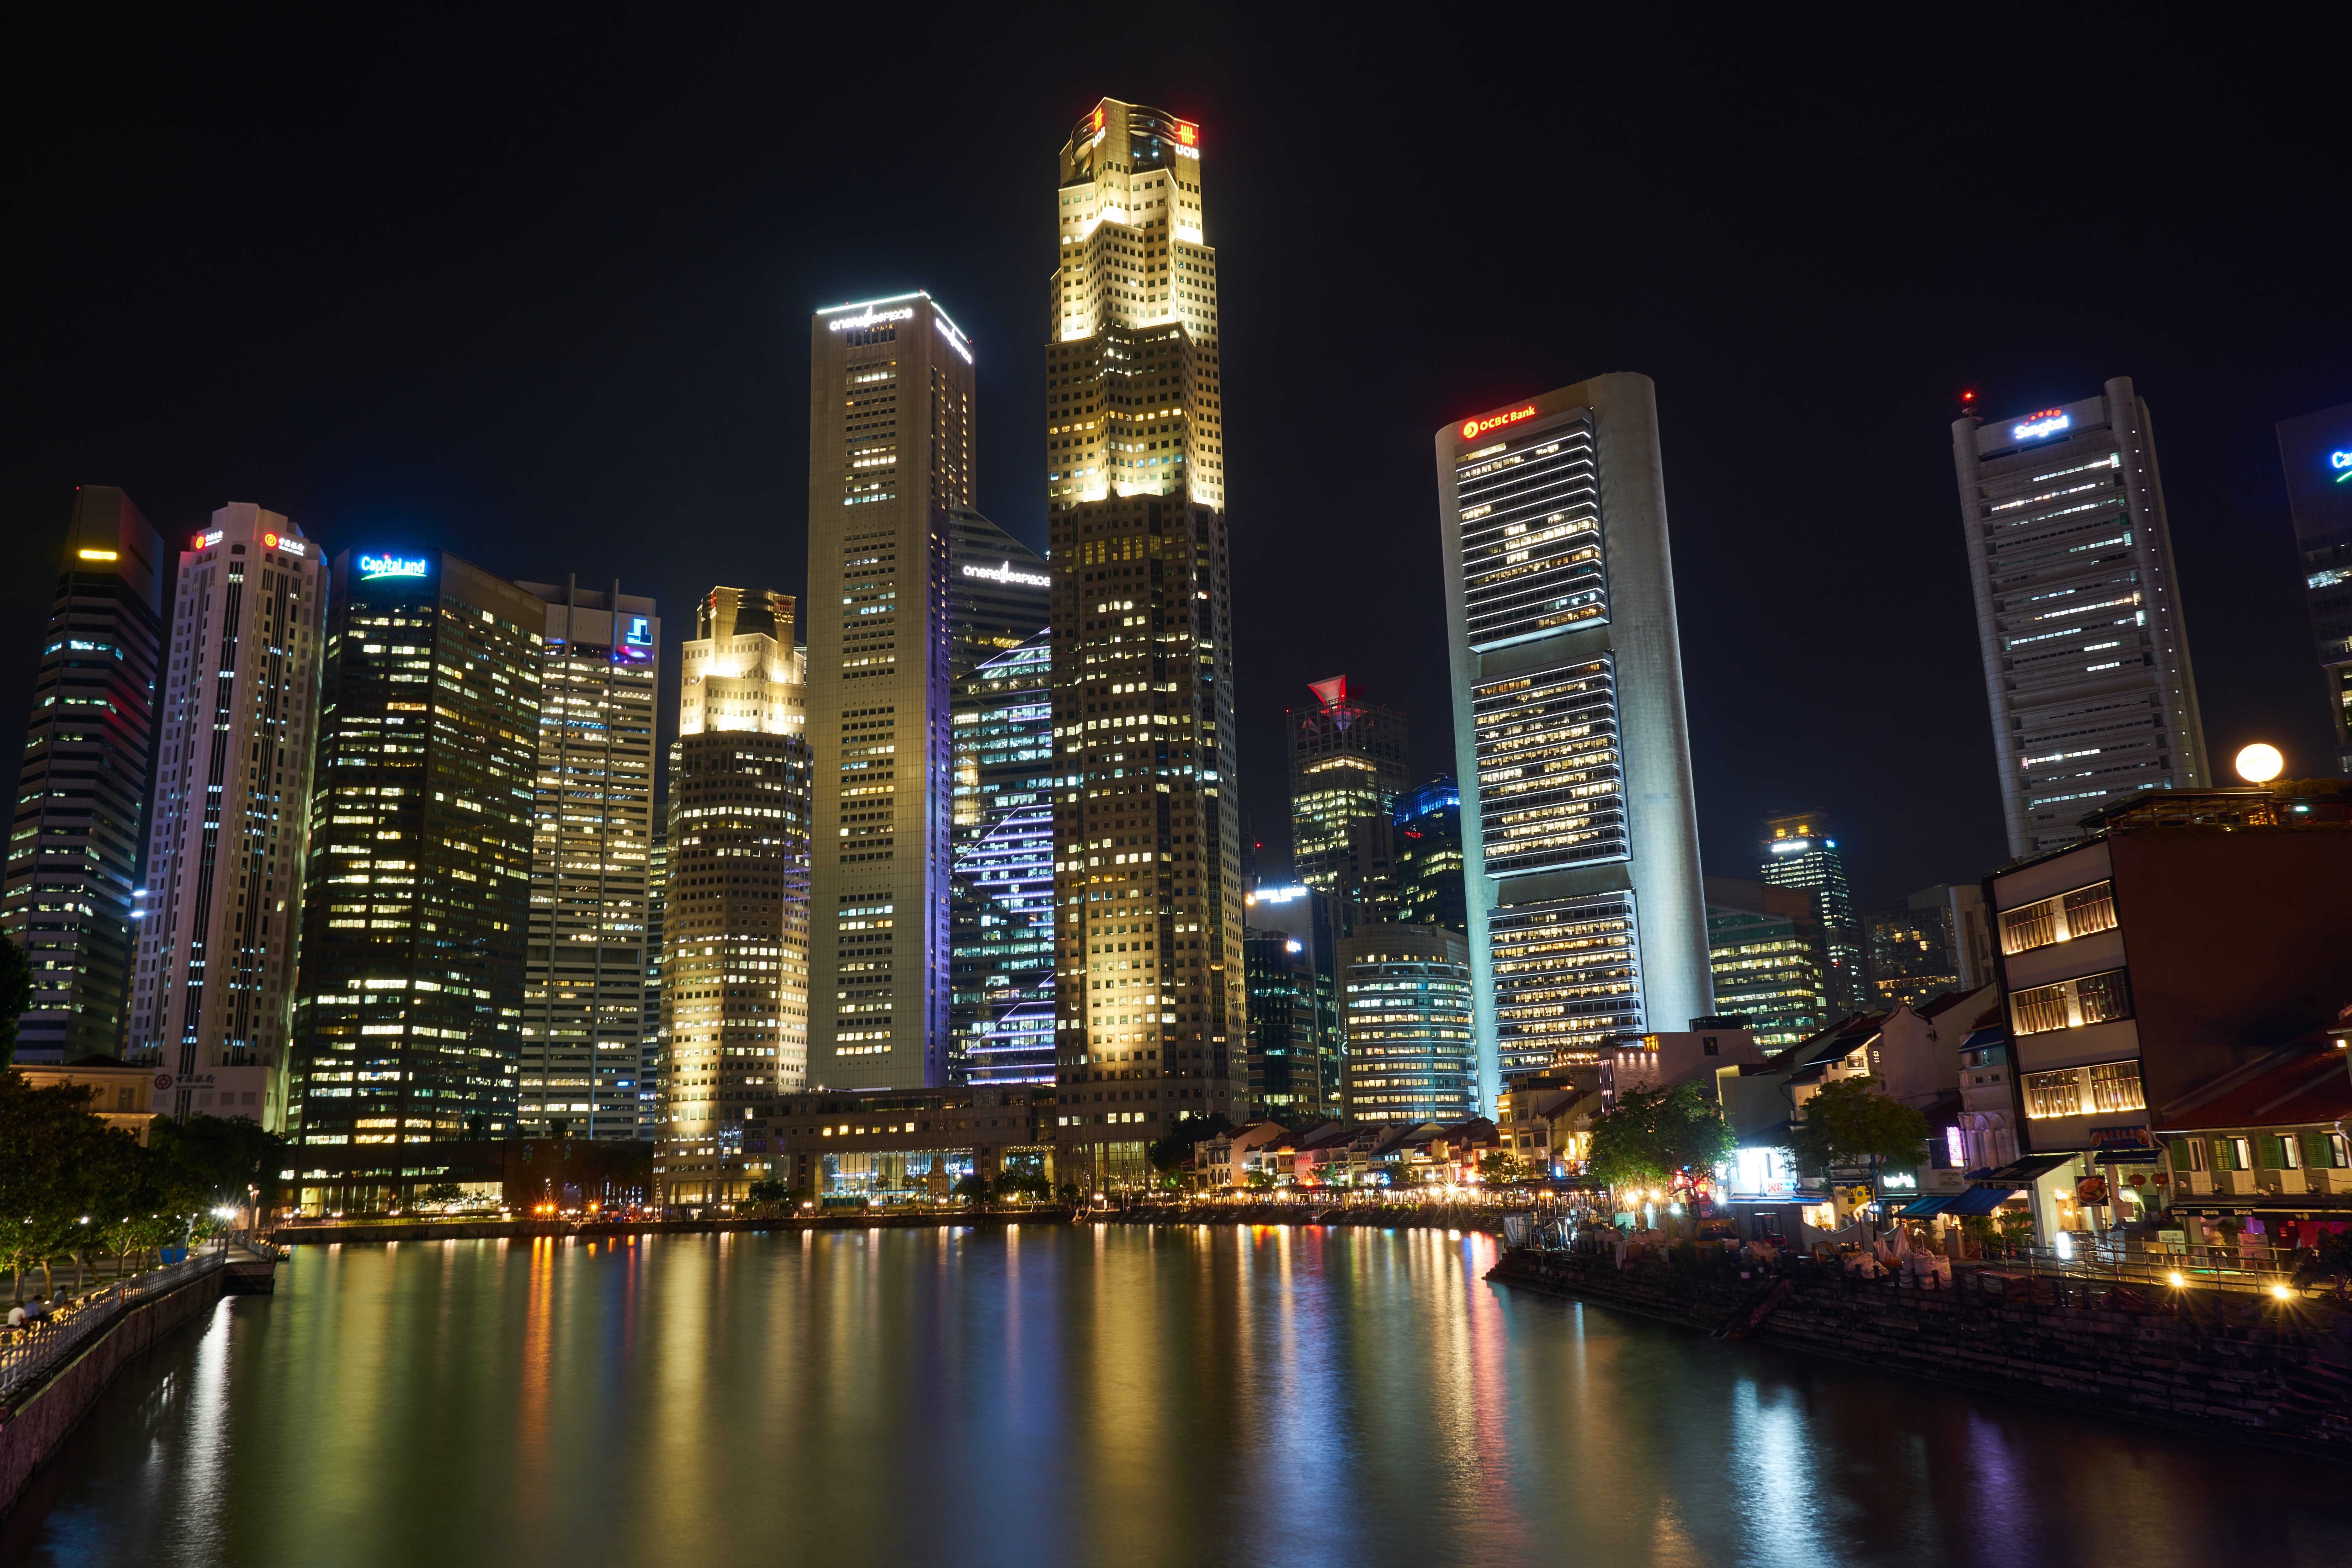 City with tall buildings at night